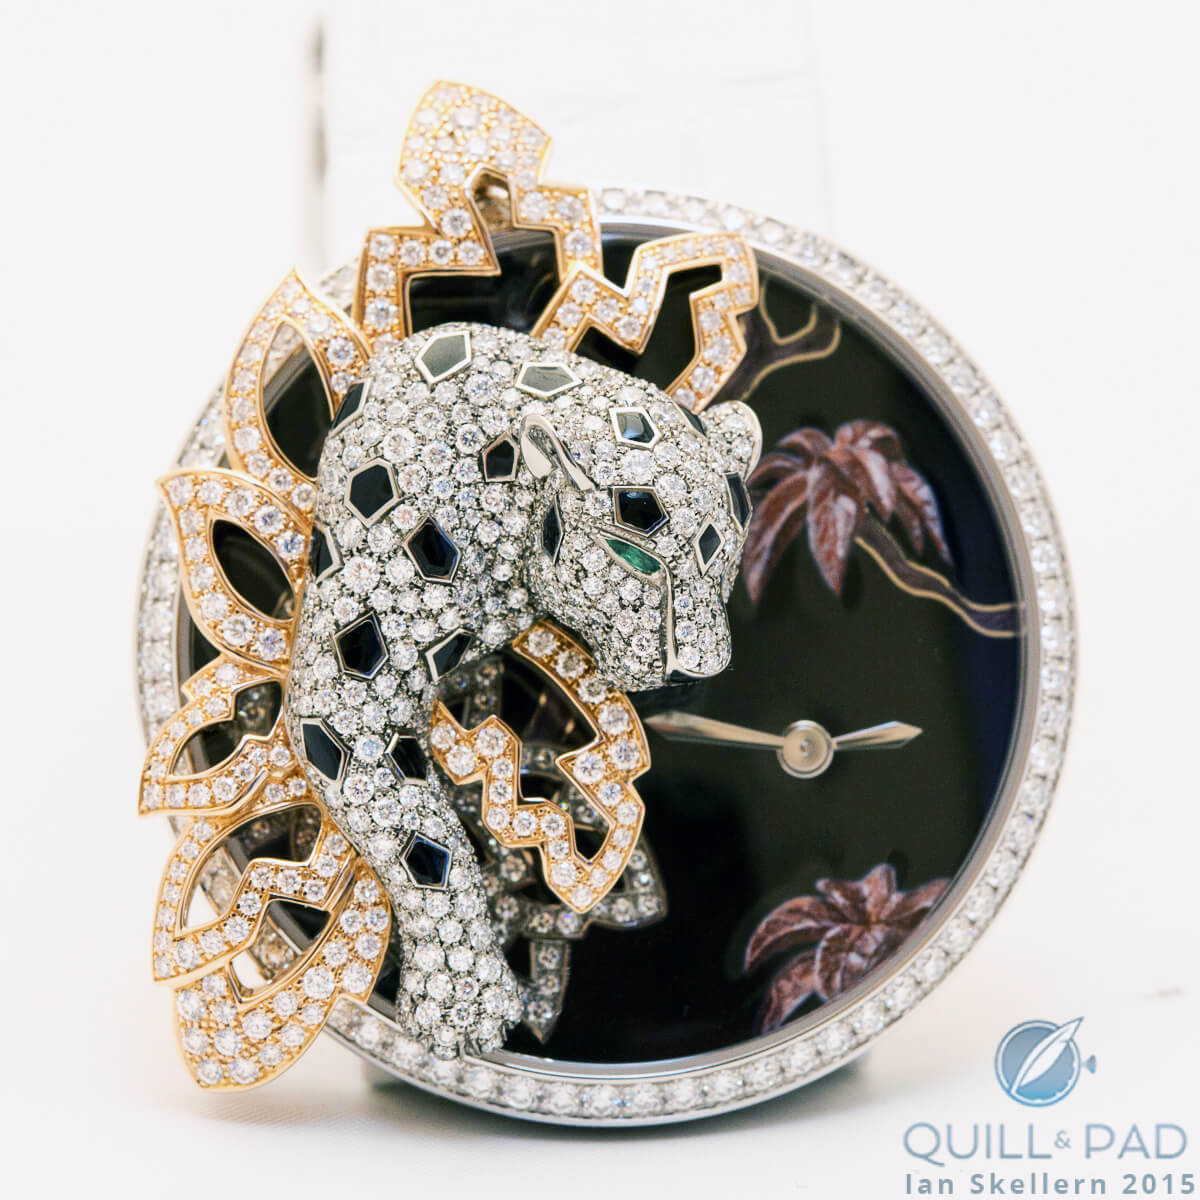 The removable panther on this jewelry timepiece boasts Cartier's version of snow setting